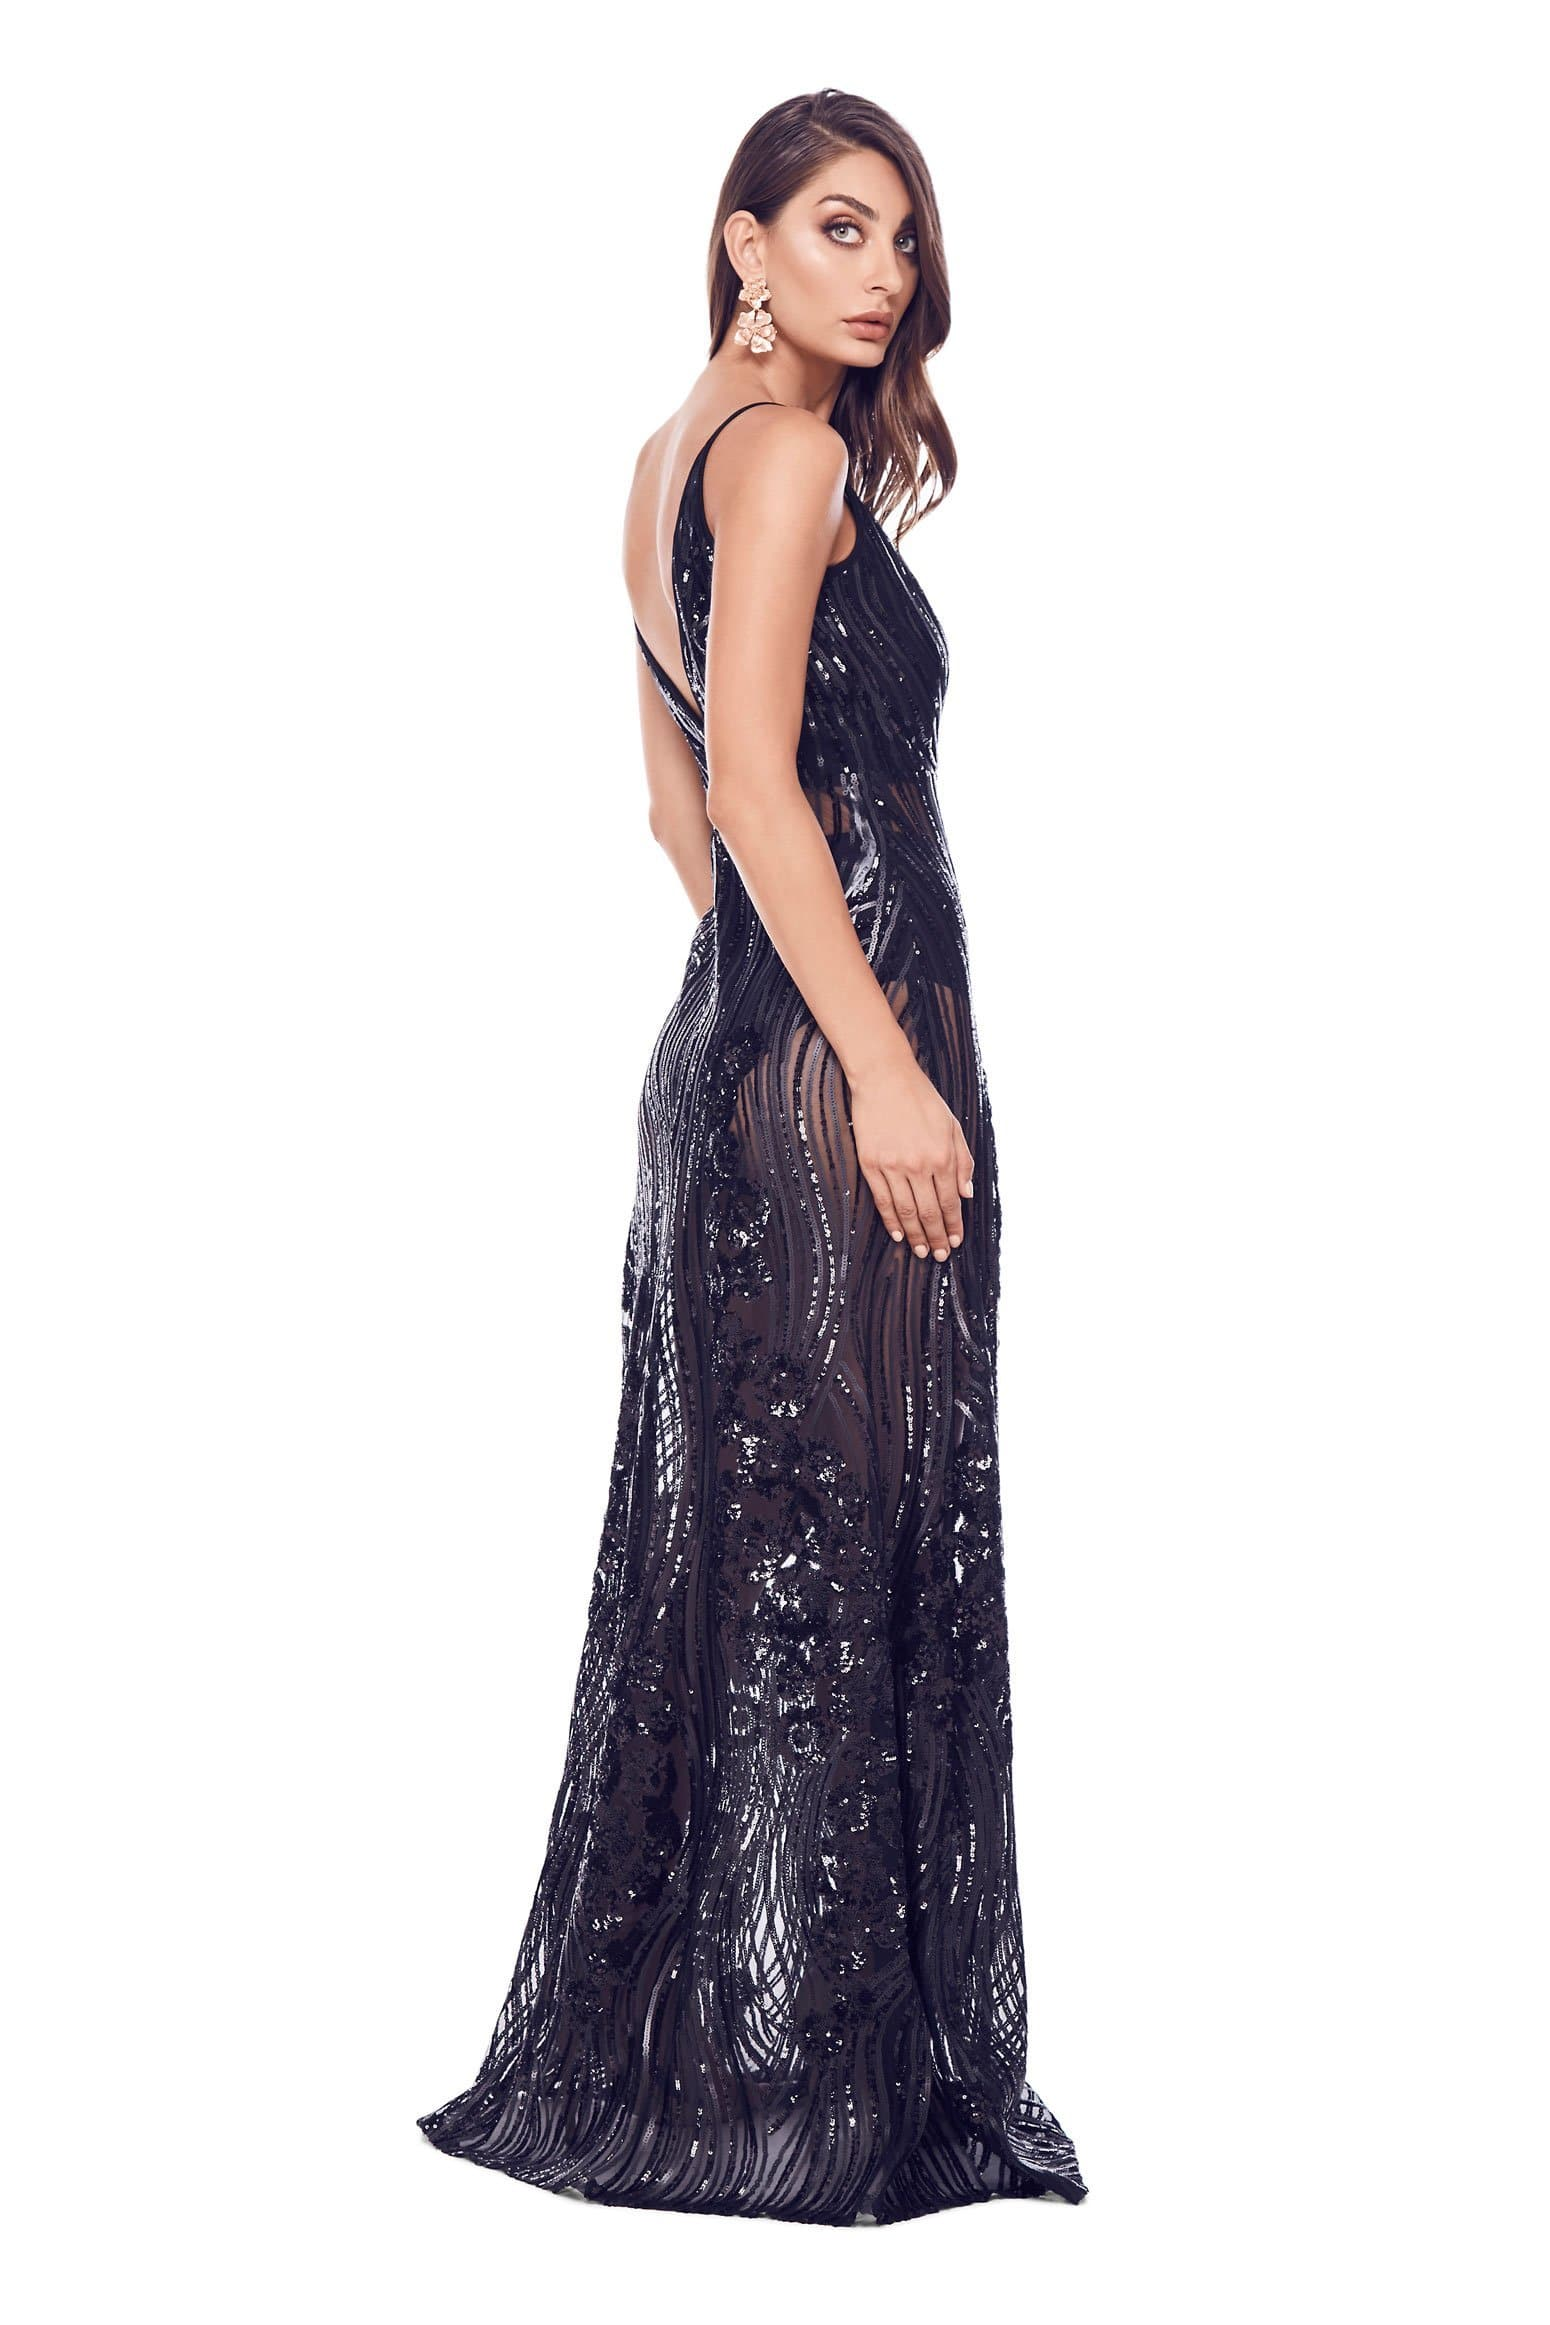 Lacrecia -  Sheer Black Sequin Gown with Plunge Neck & Low Back